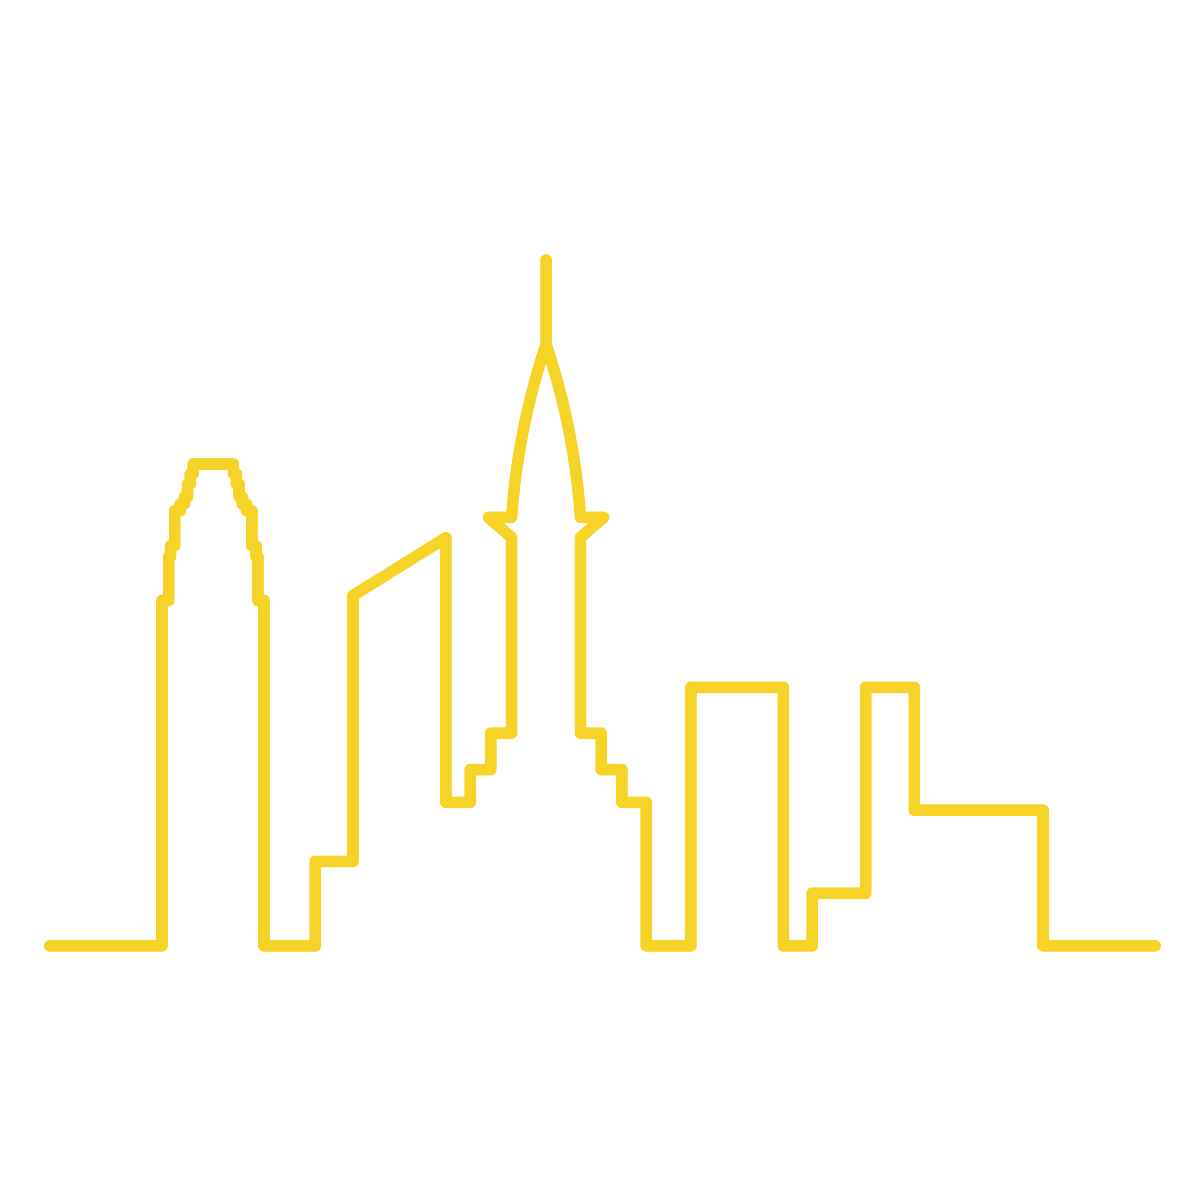 noun_city skyline_1396562_F5D327.png